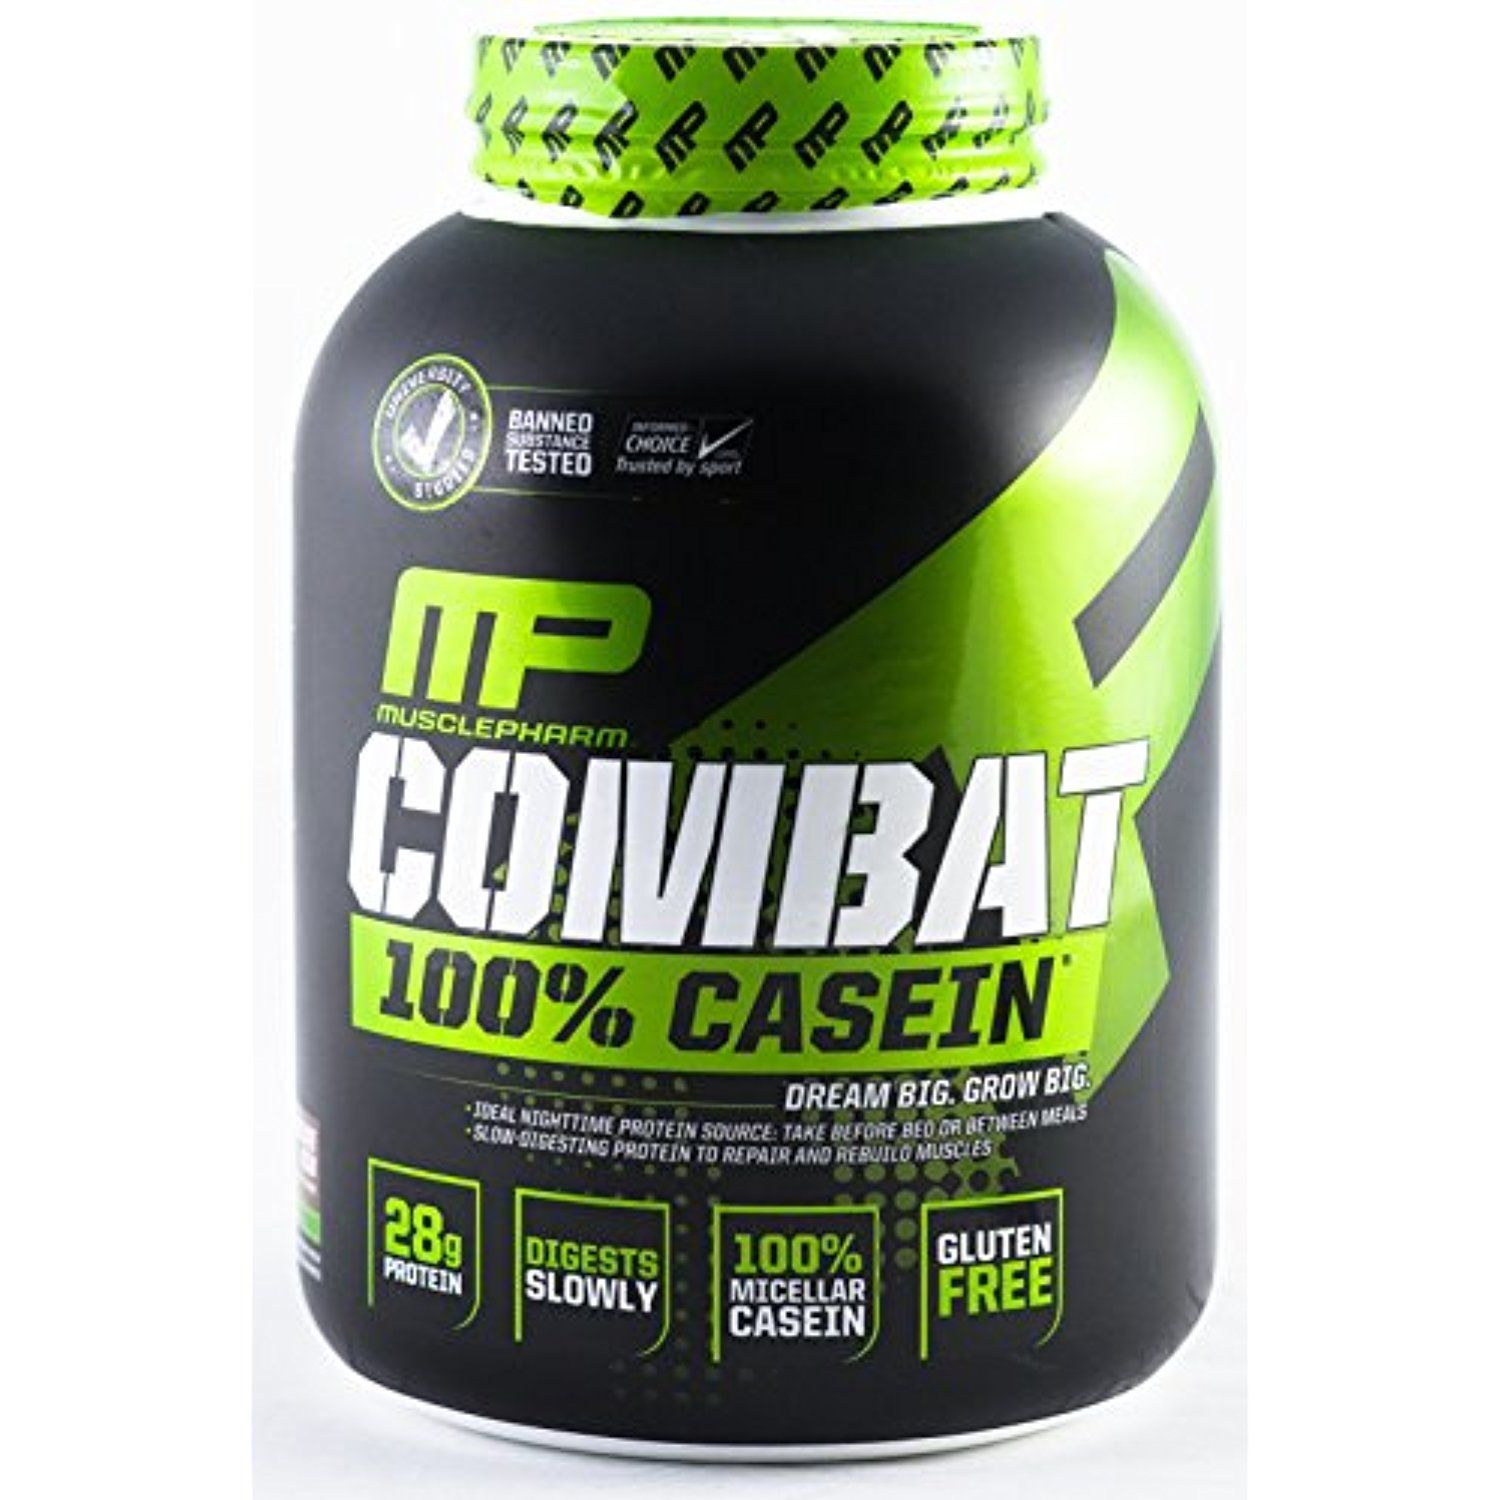 Info Harga Musclepharm Combat 4lbs Termurah 2018 Emba Jeans Fm328 Basic Upd Celana Warna Heavy Stom Navy 27 Casein Supplement Chocolate Milk 4 Pound You Can Get More Details